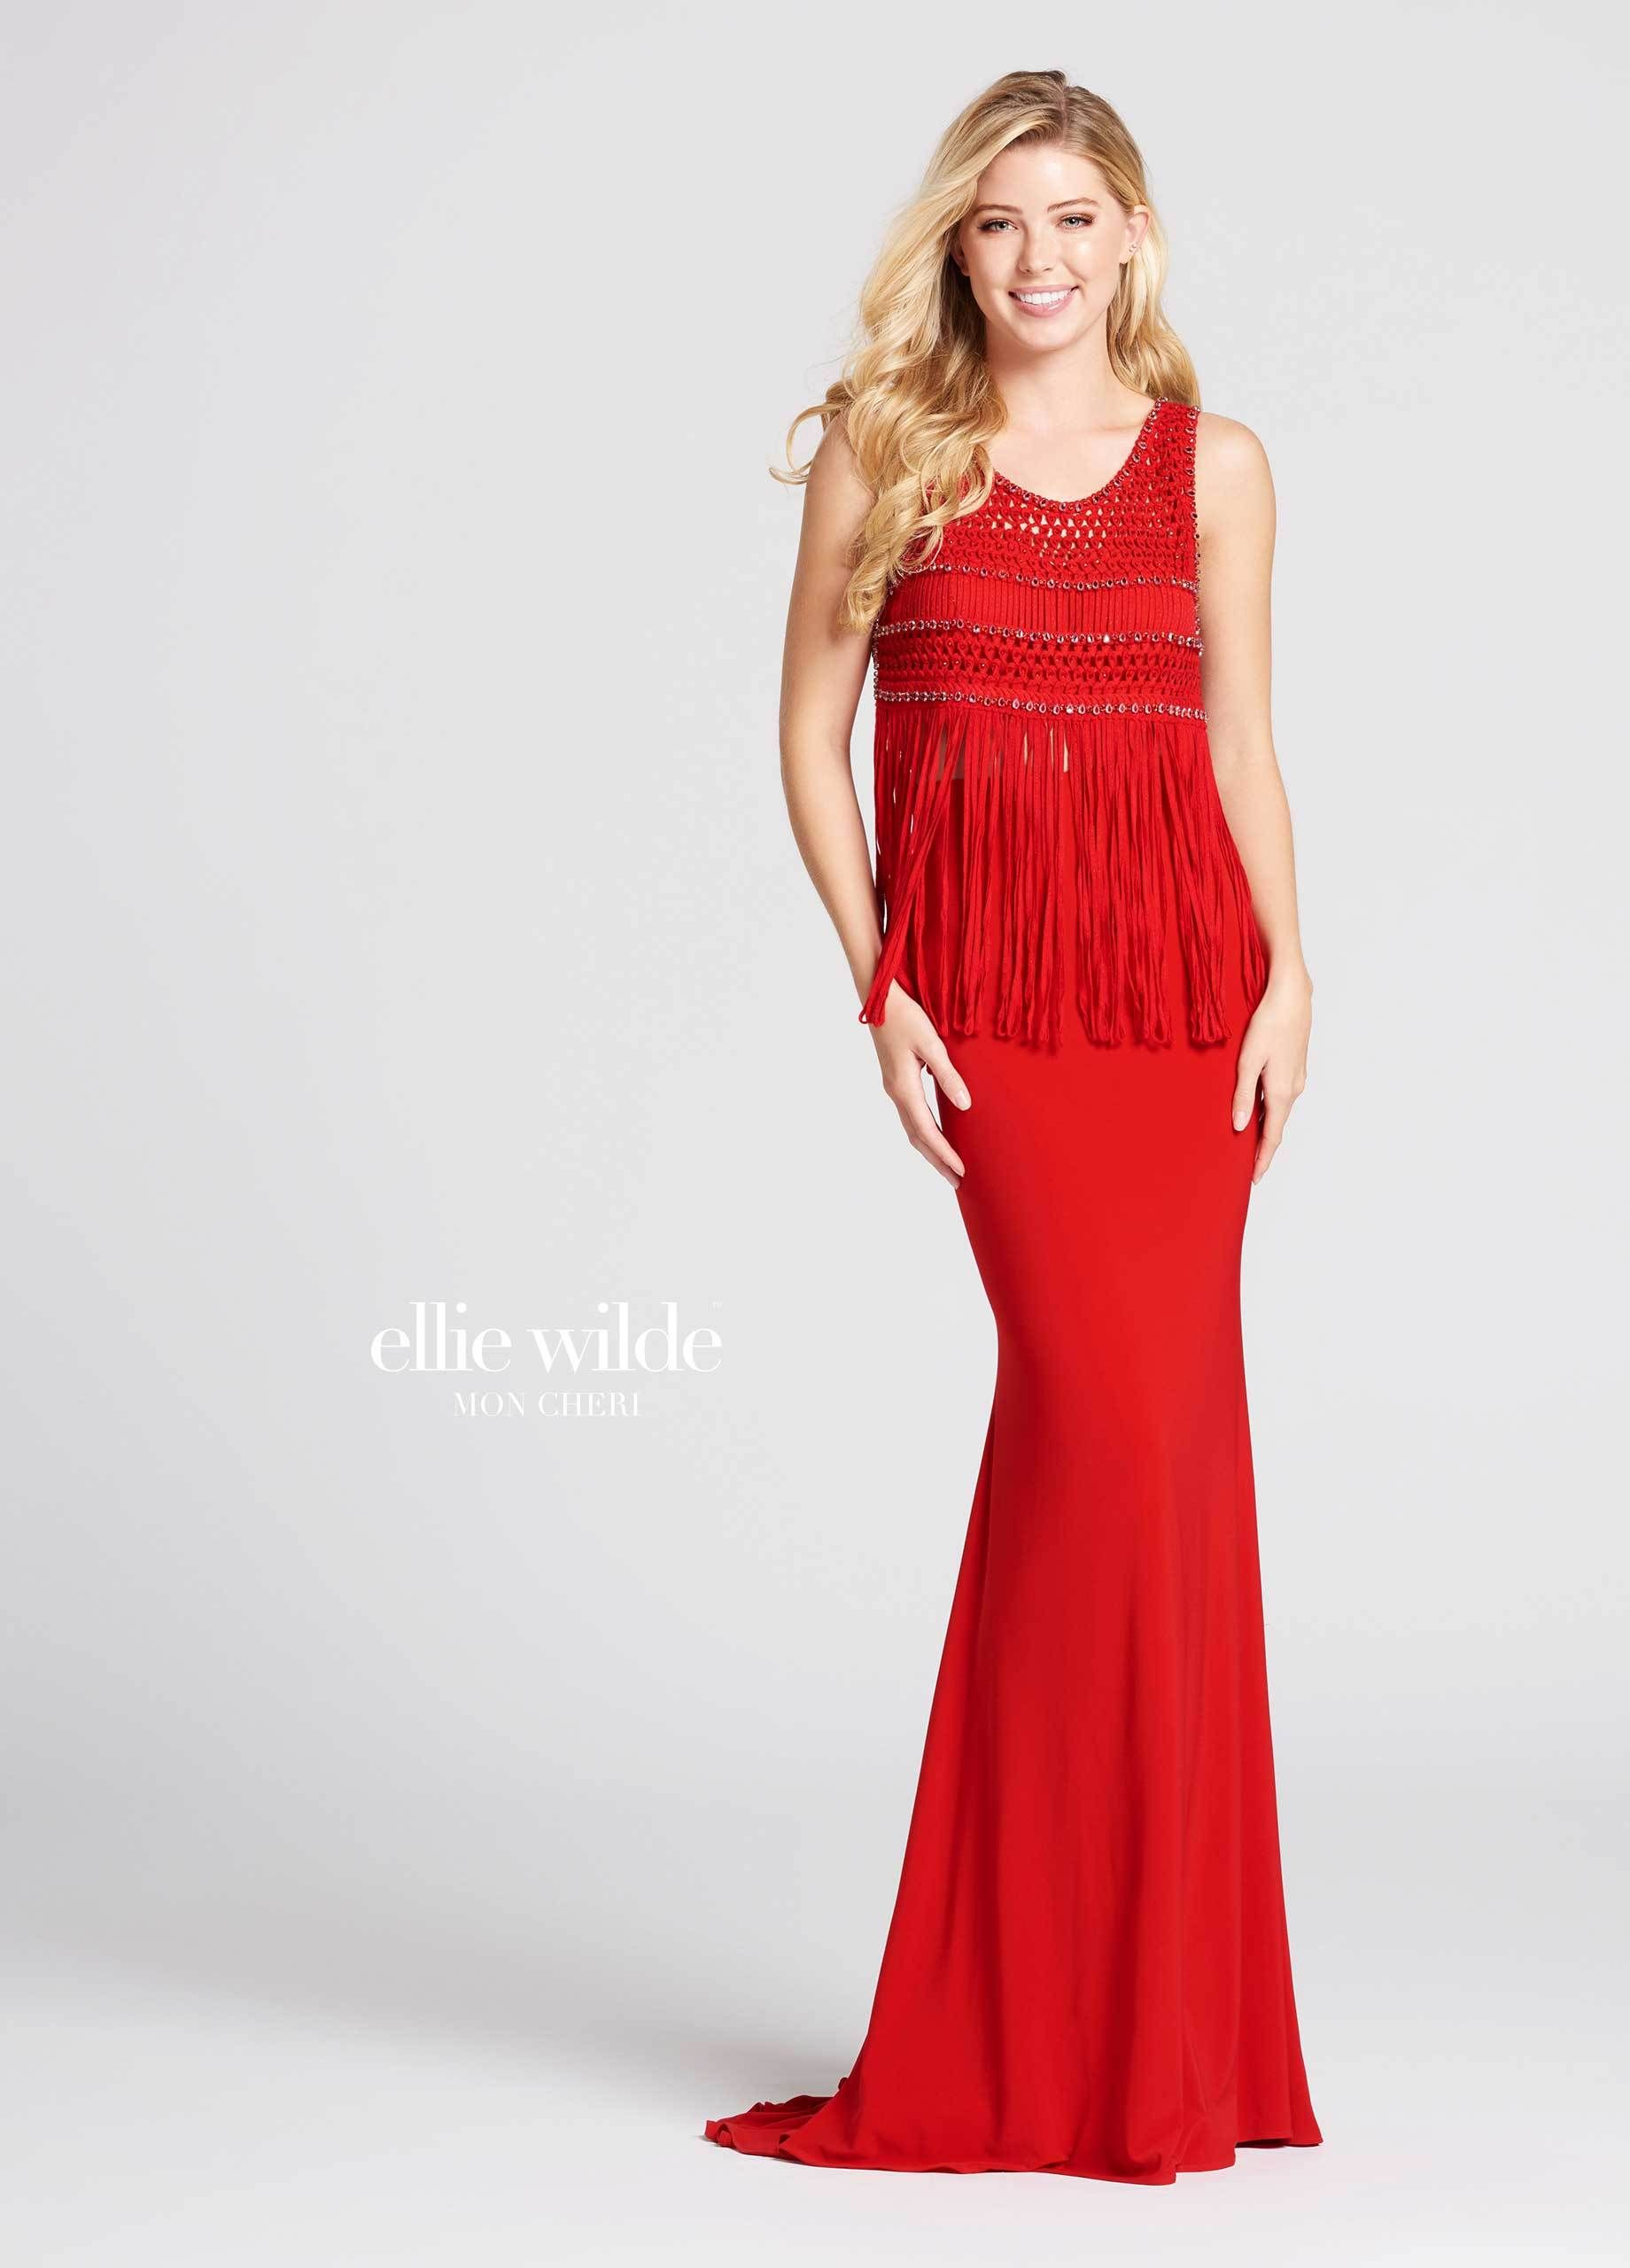 Ellie wilde red or black in products pinterest